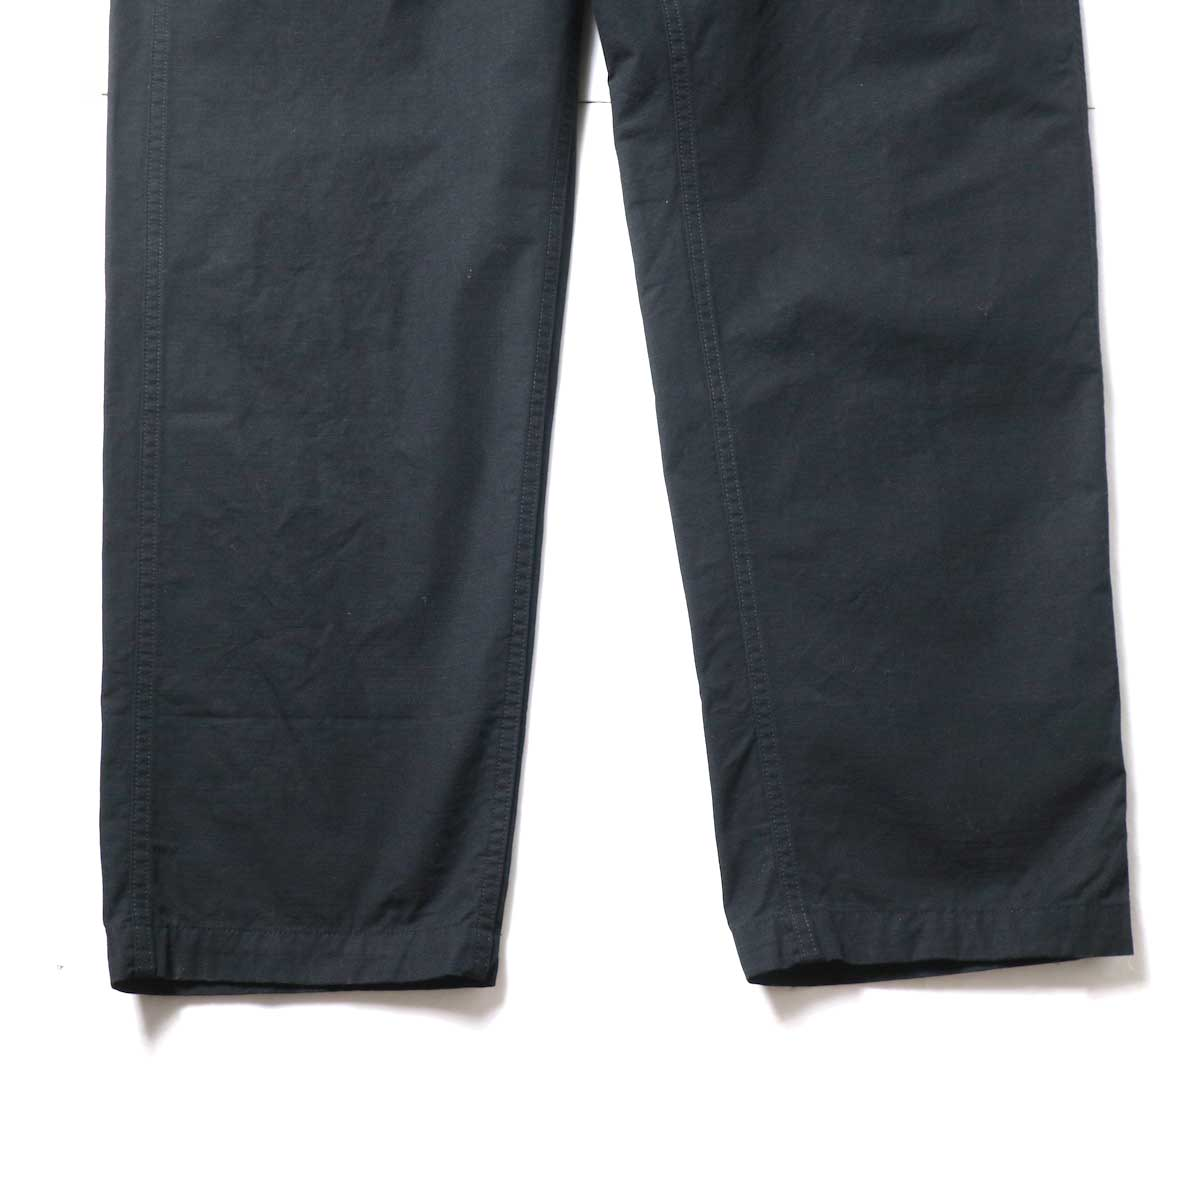 Engineered Garments / Fatigue Pant - Cotton Ripstop (Black)裾